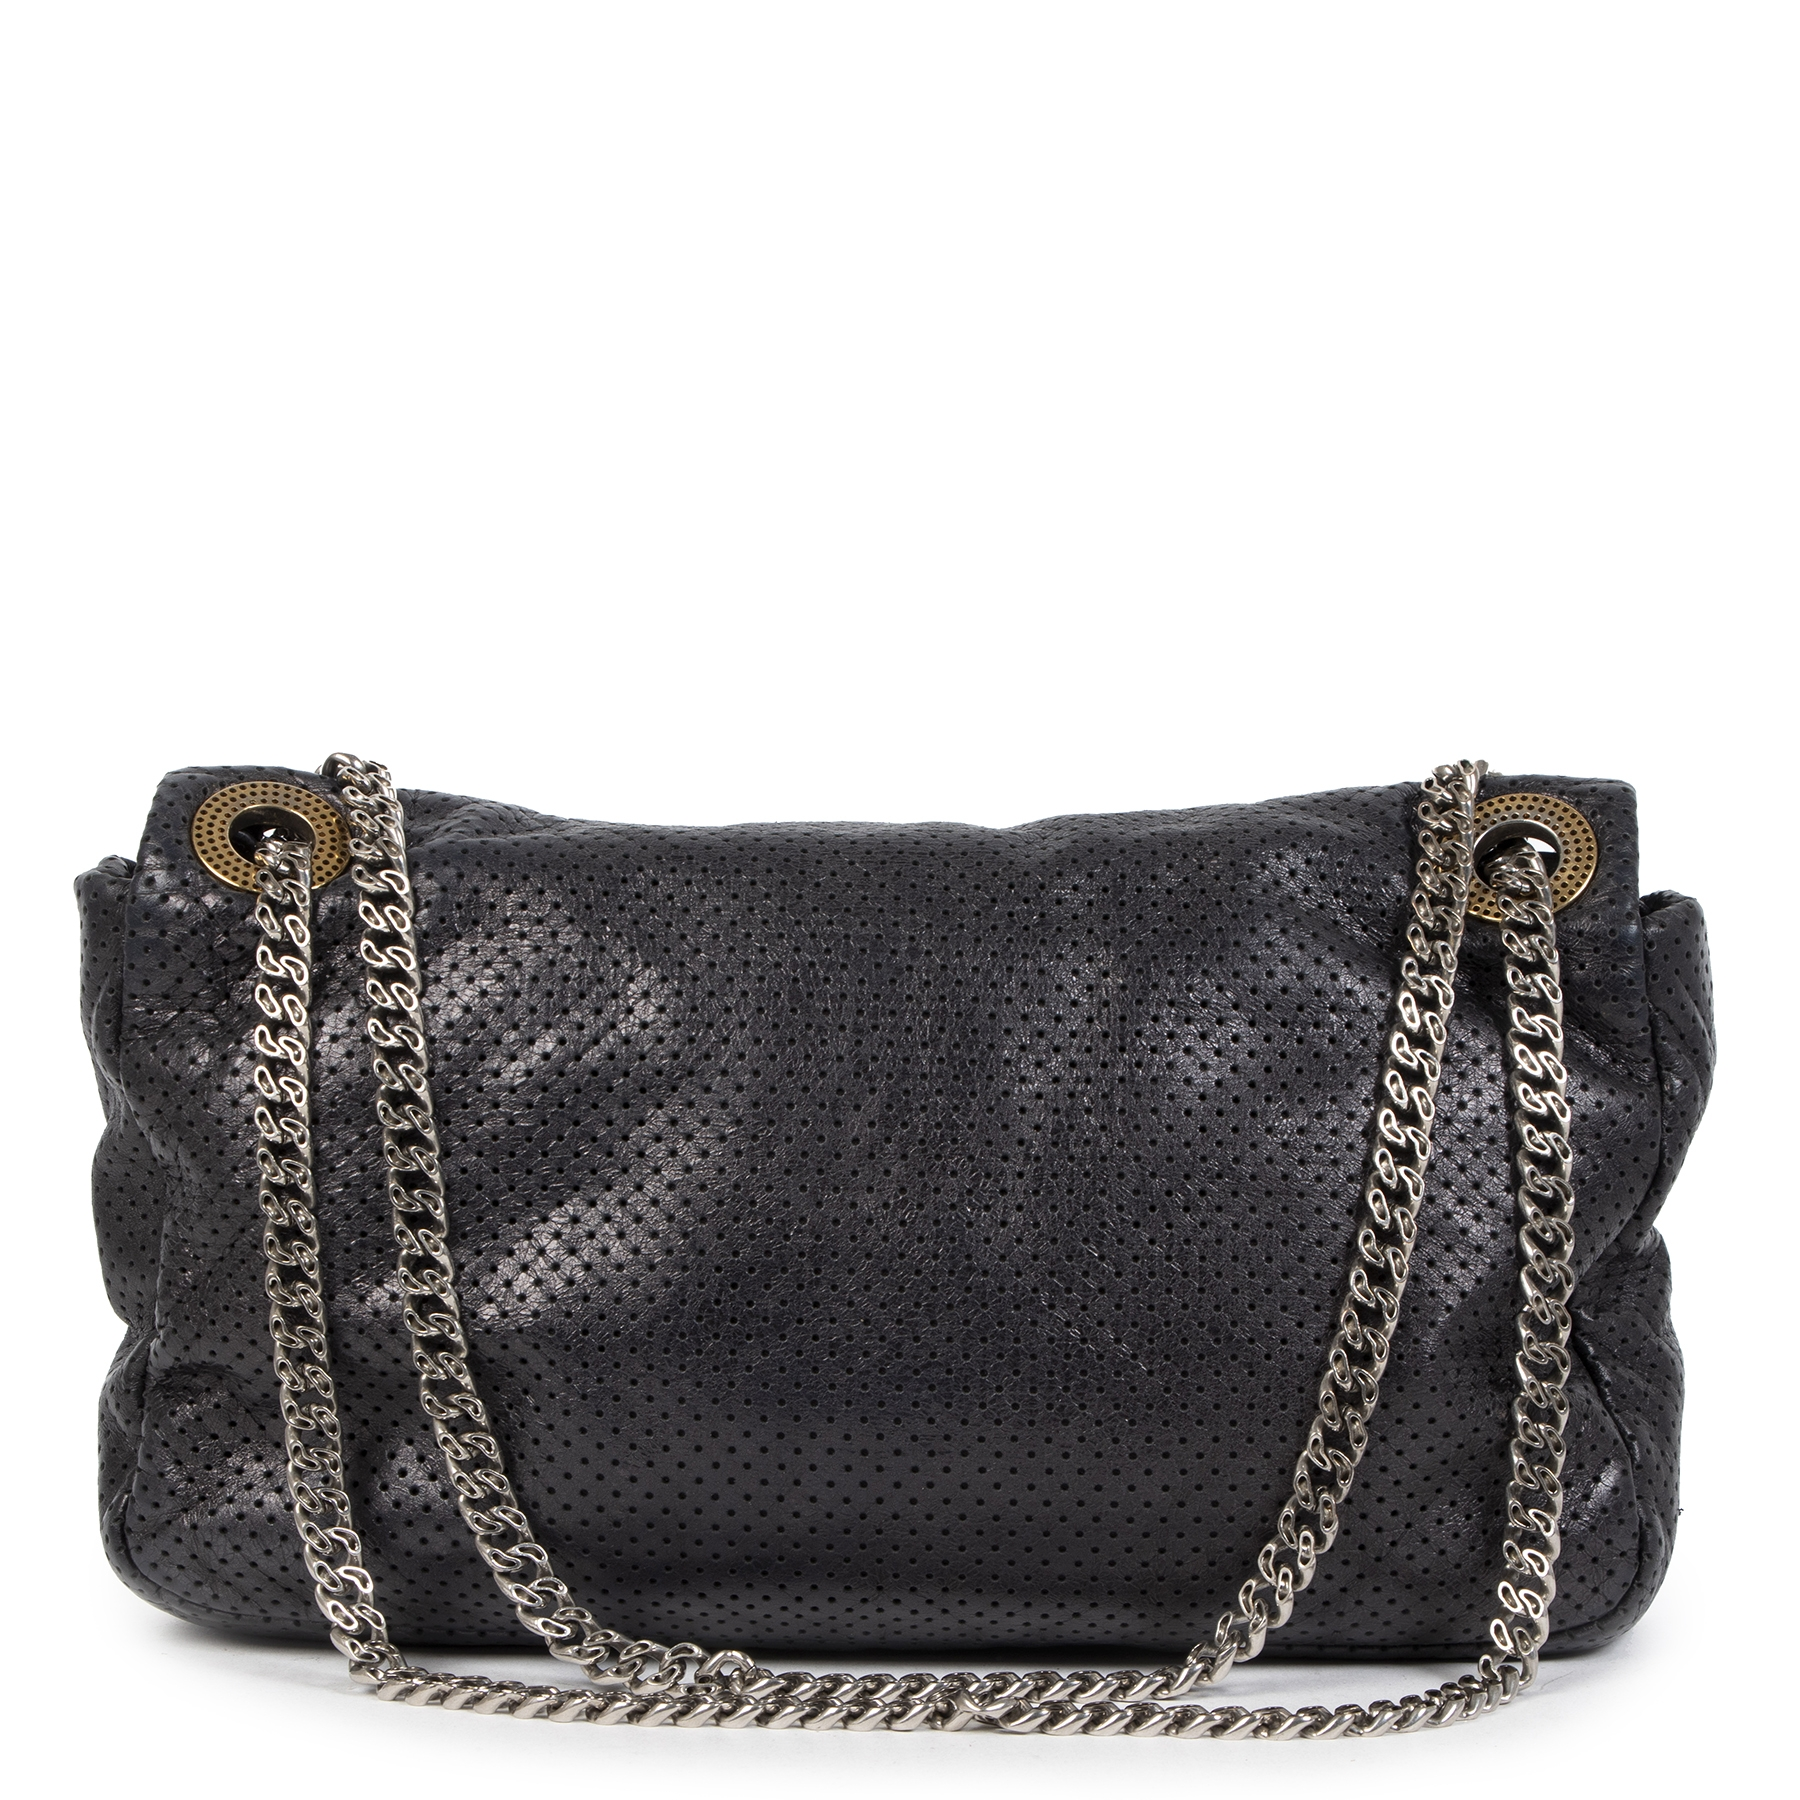 Authentieke tweedehands vintage Chanel Metallic Perforated Leather Flap Bag koop online webshop LabelLOV